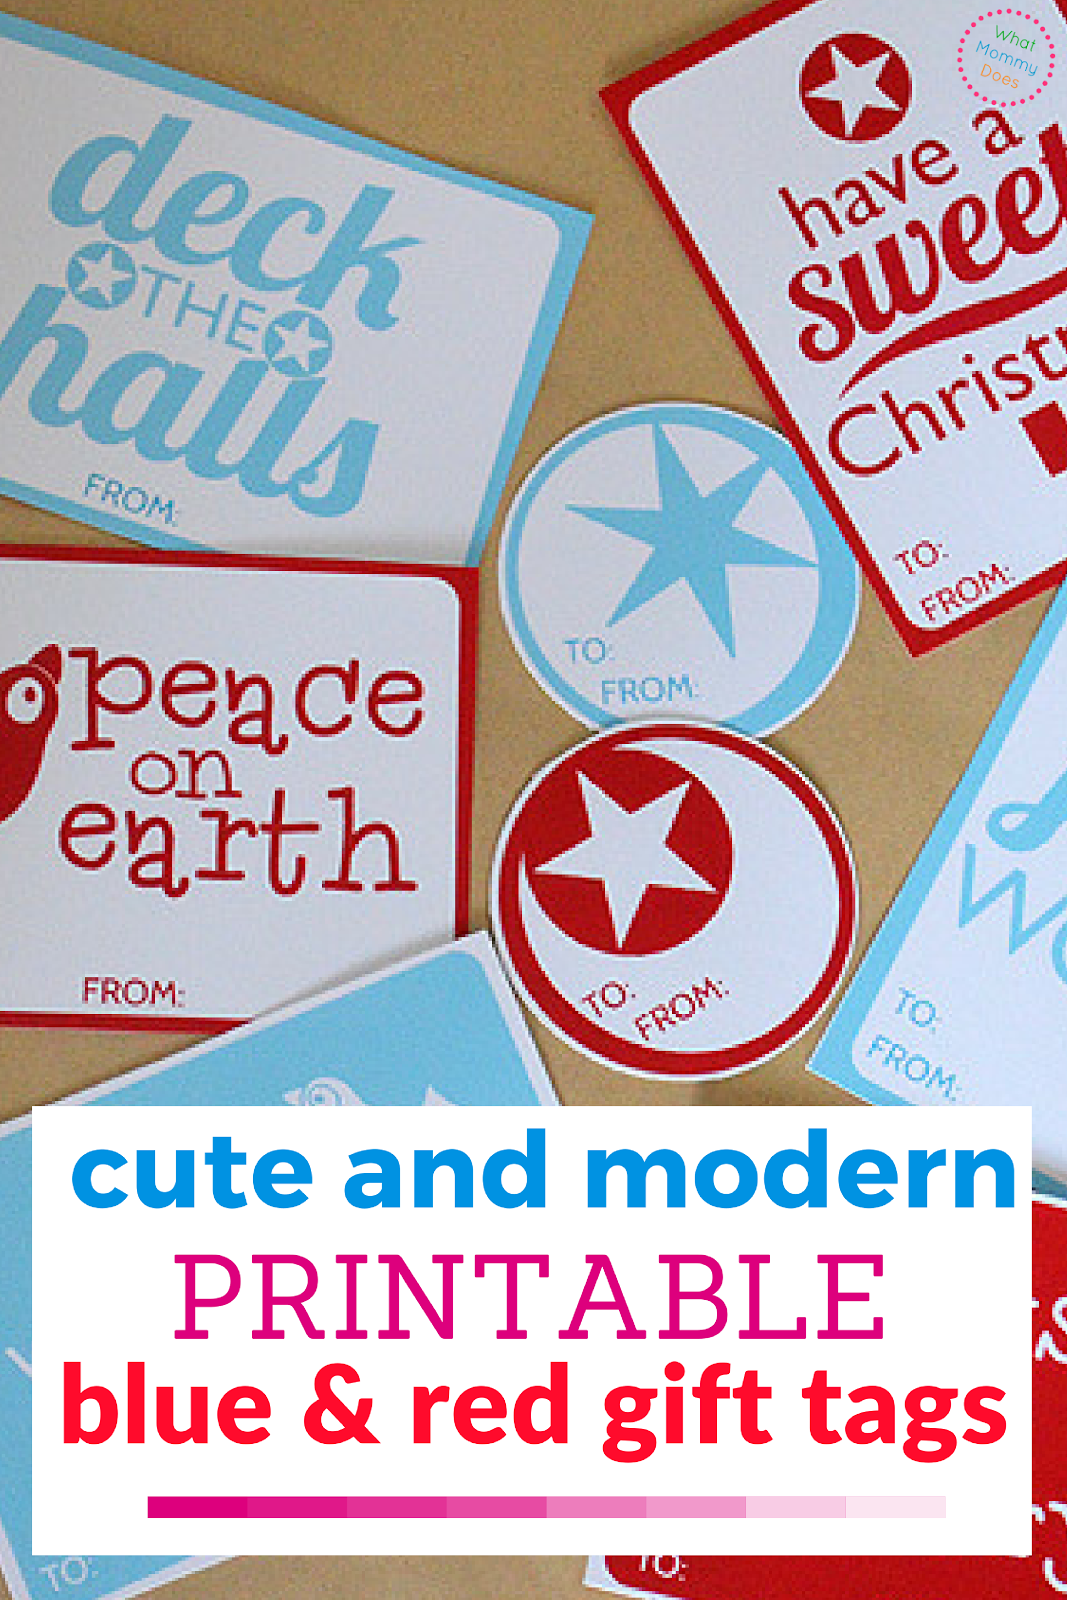 Christmas Tag Printables - Your Christmas gifts will really stand out with these printable gift tags!